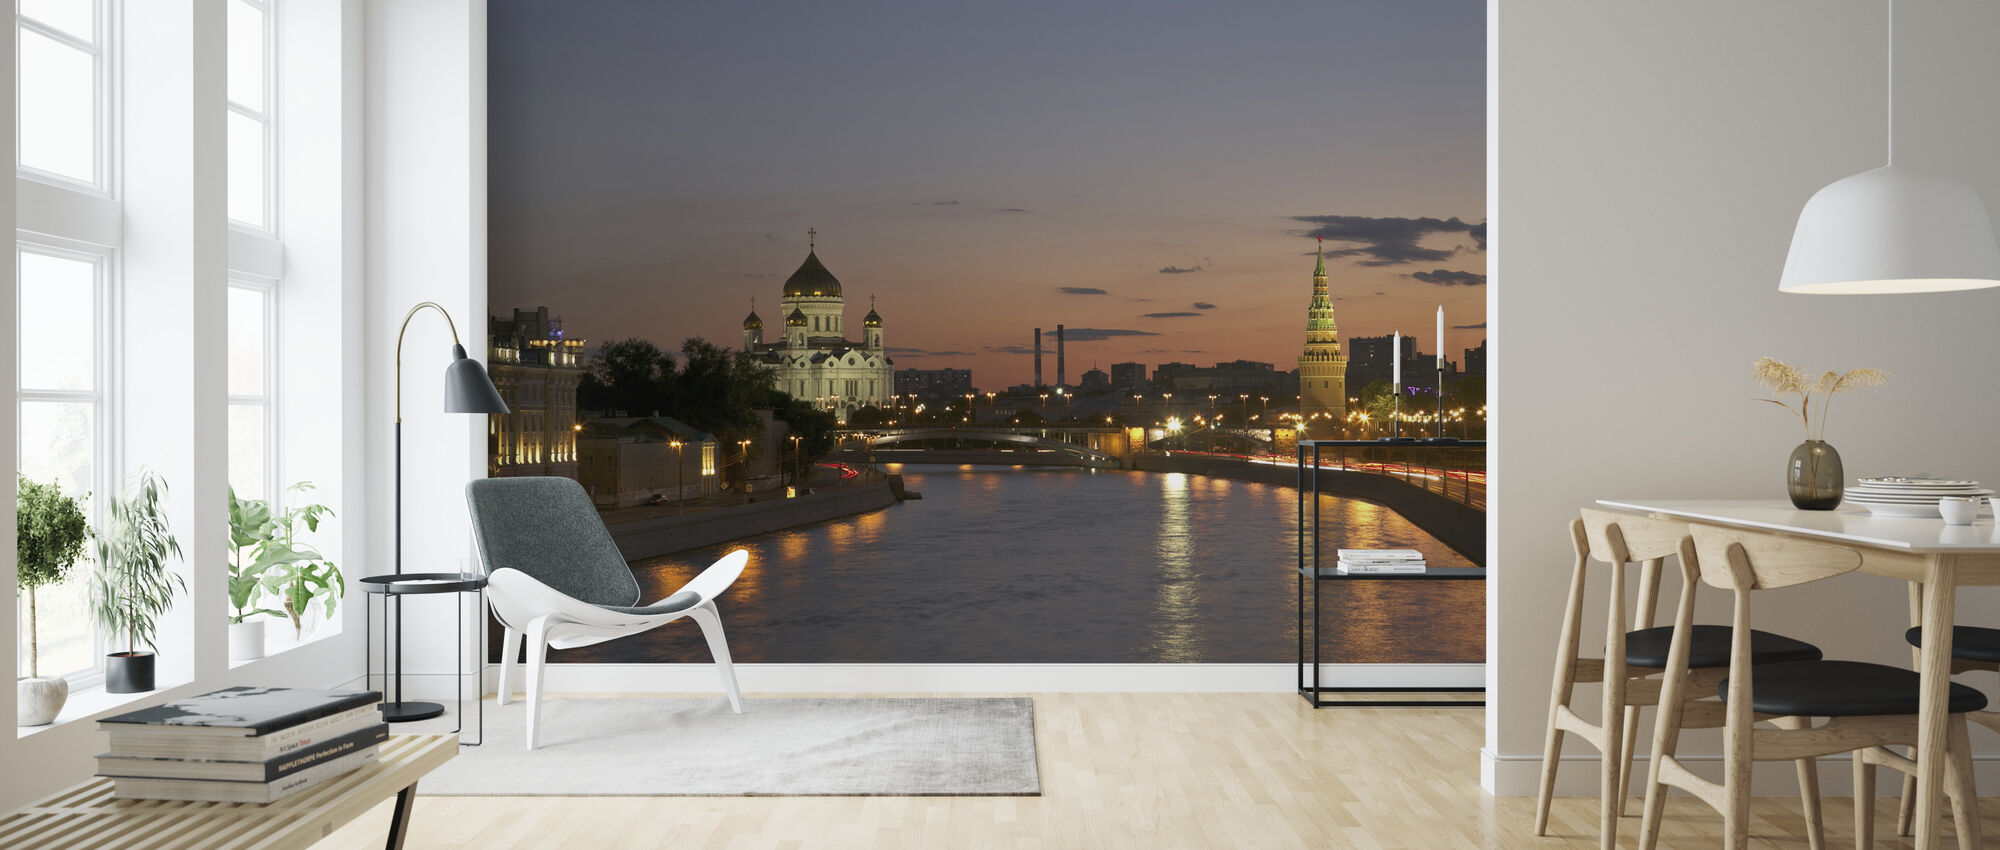 Moscow River - Wallpaper - Living Room